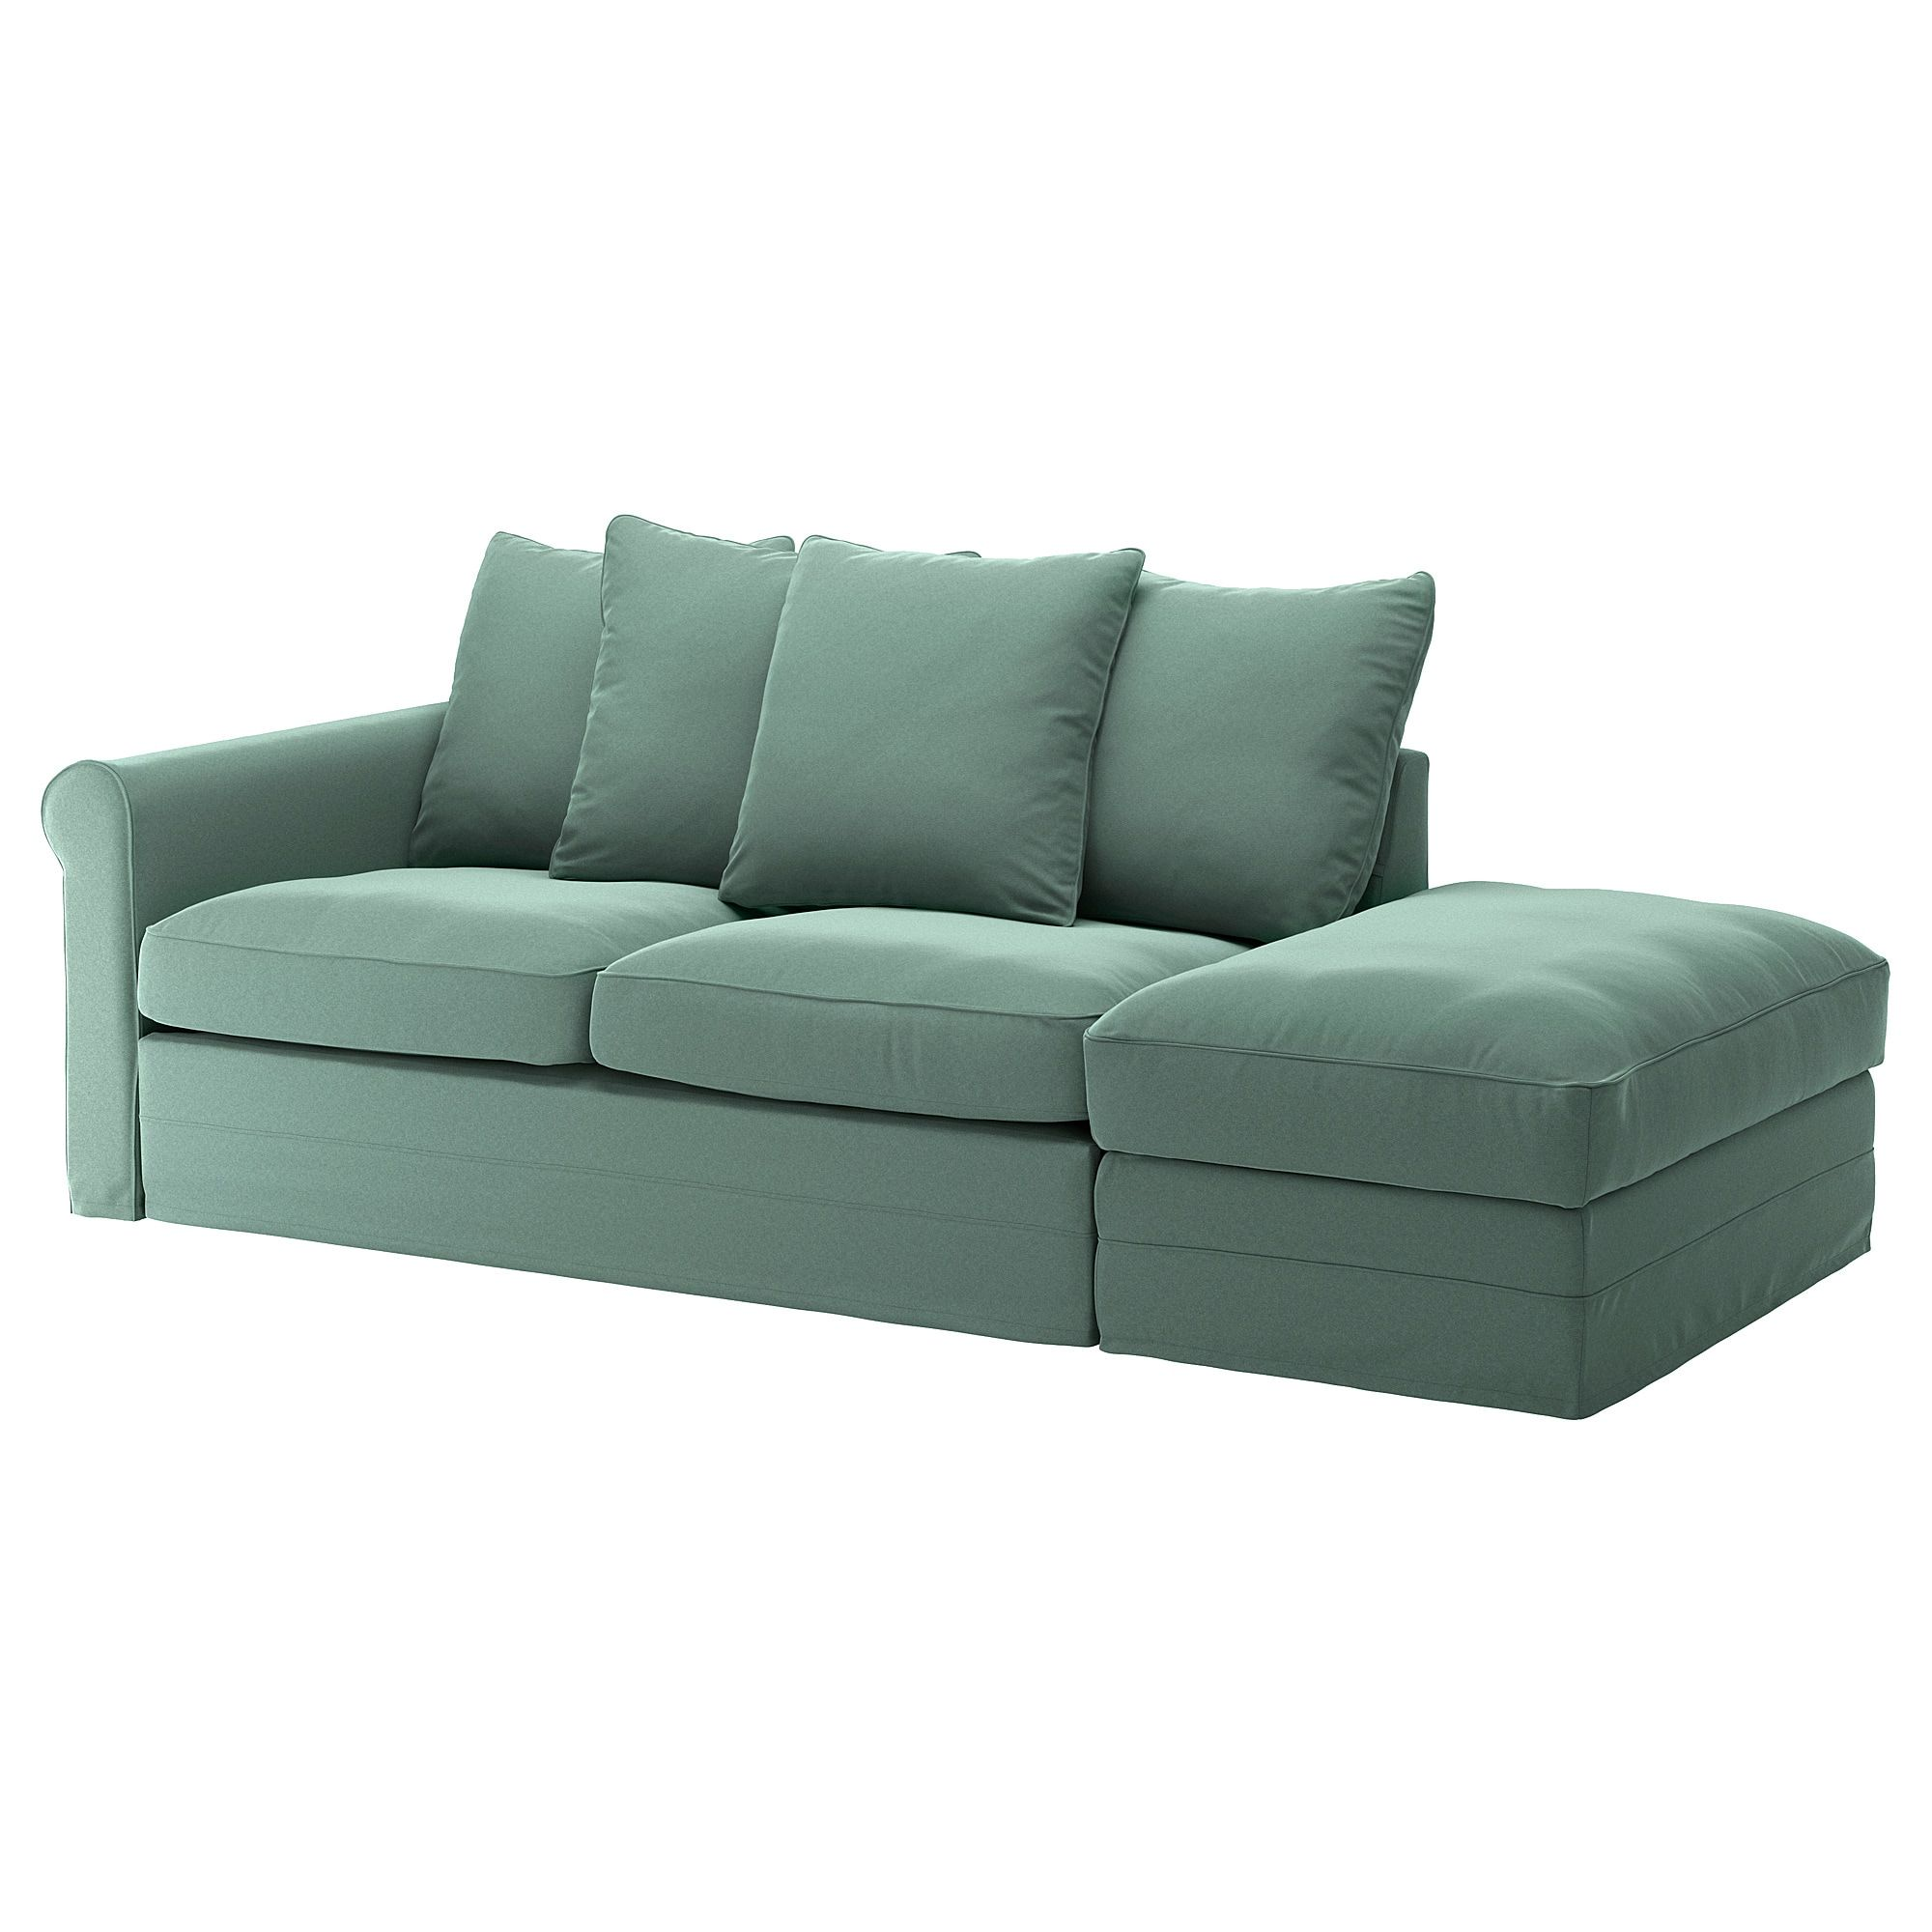 Prime Ikea Gronlid With Open End Ljungen Light Green Sleeper Sofa Caraccident5 Cool Chair Designs And Ideas Caraccident5Info